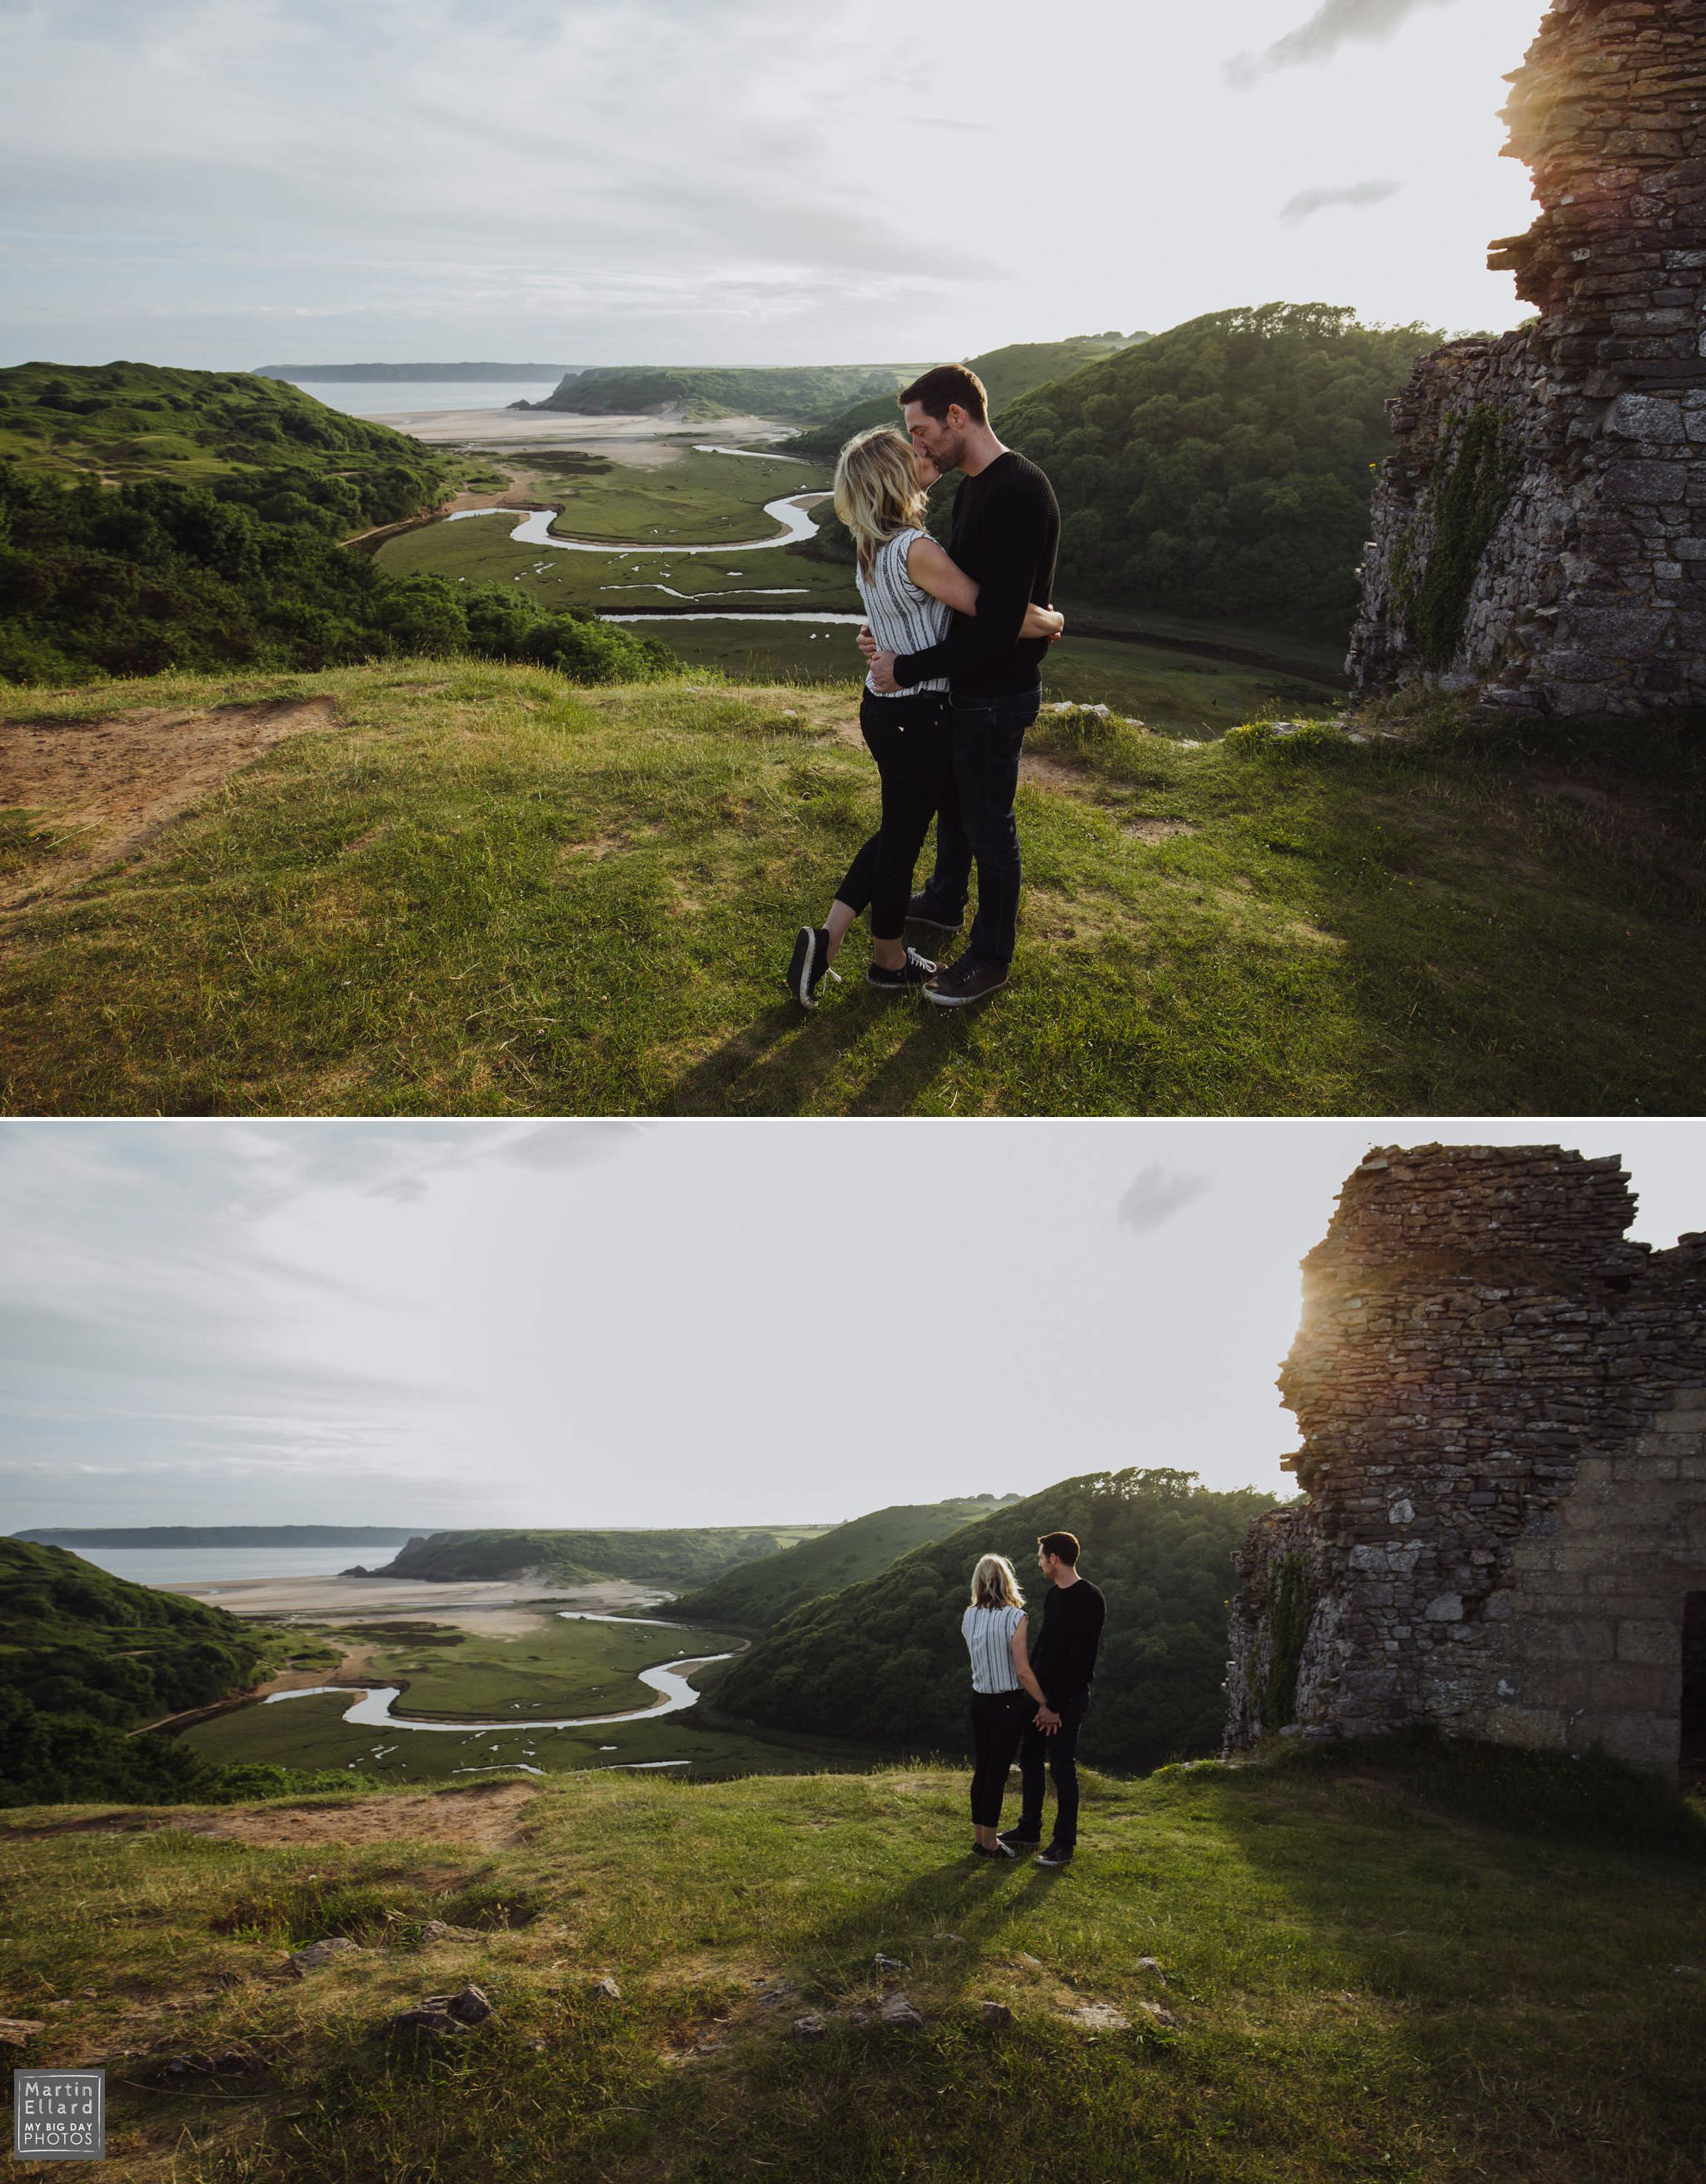 gower wedding photographer engagement shoot three cliffs bay